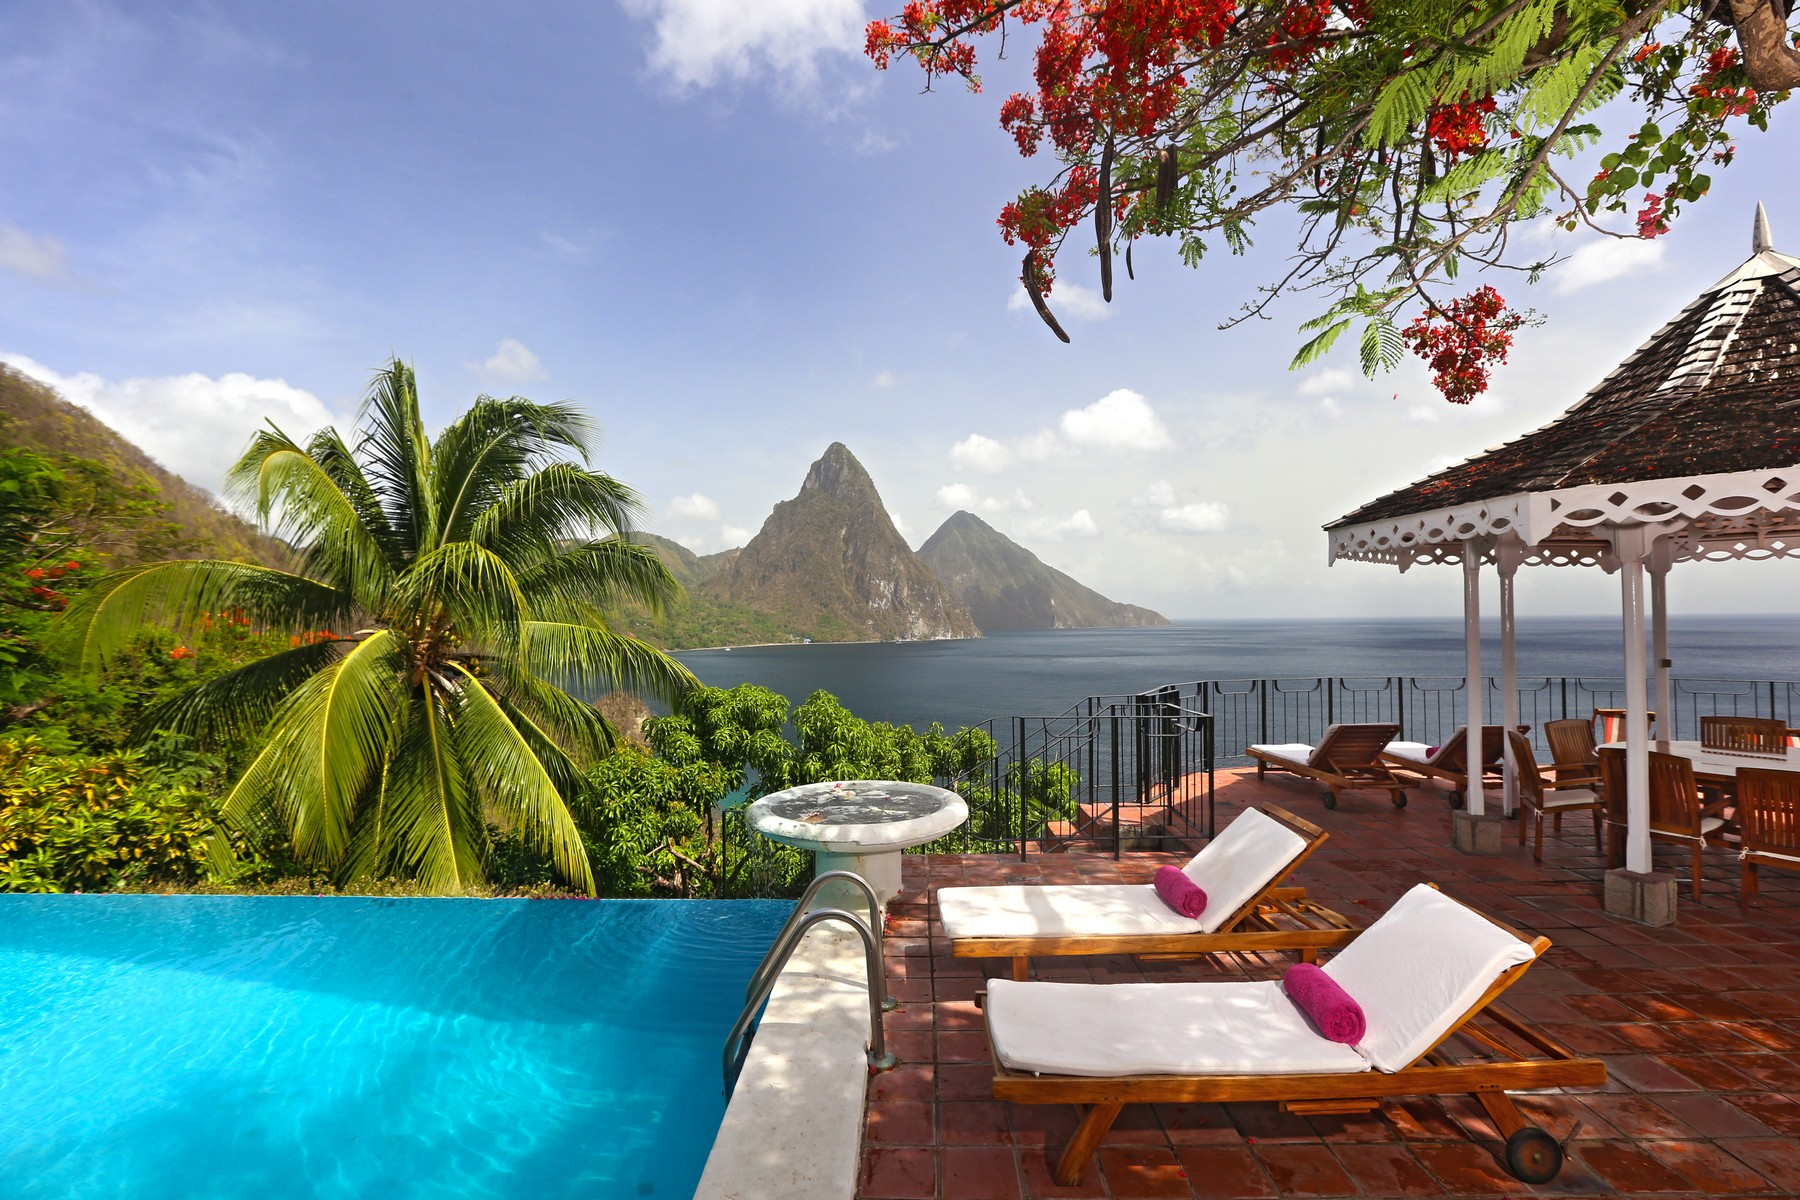 Single Family Home for Sale at Le Gallerie, Soufriere Bay Other St. Lucia, Other Areas In St. Lucia, St. Lucia